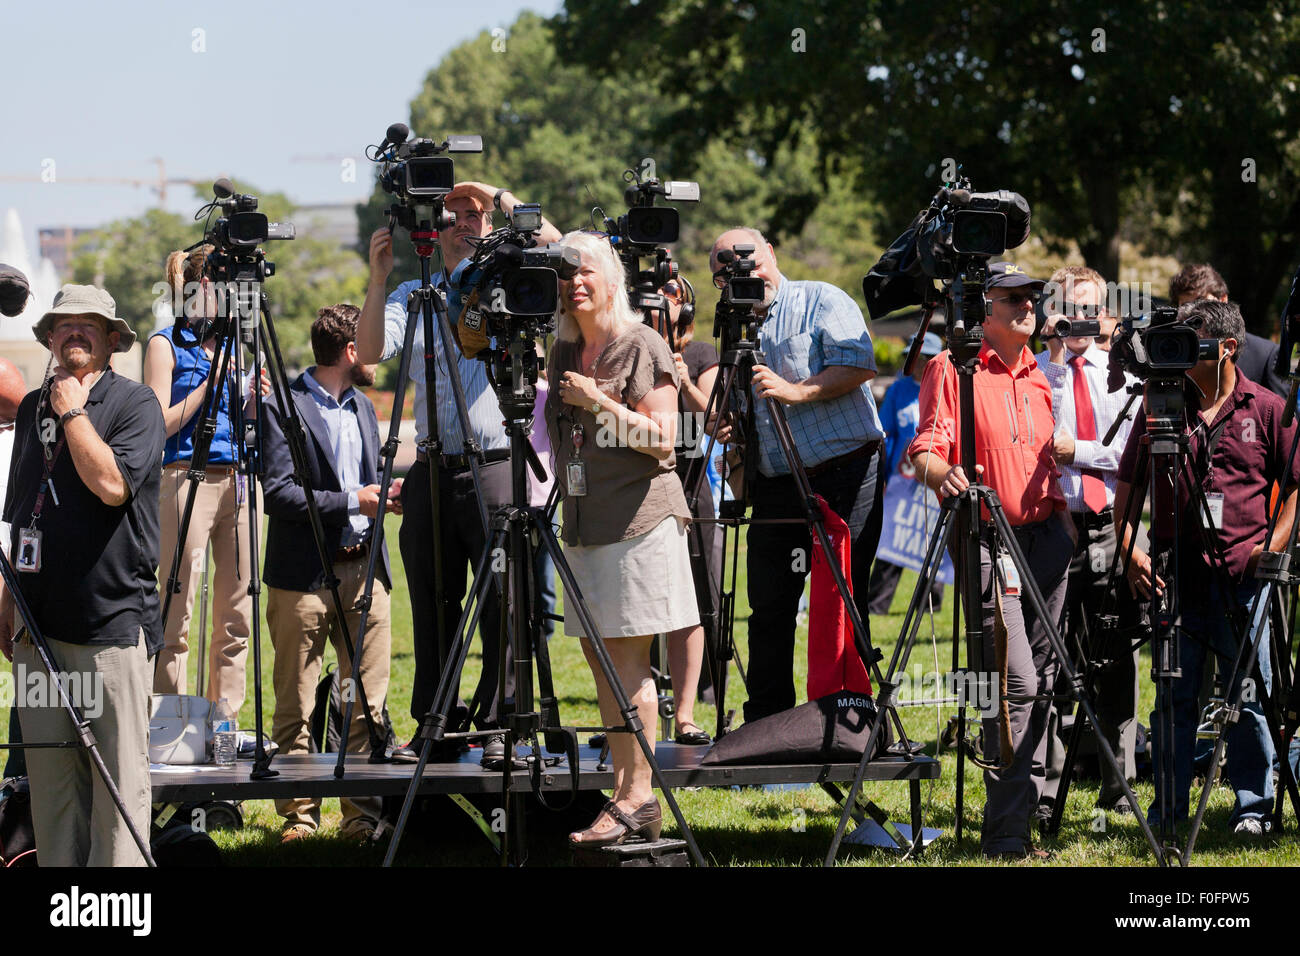 TV news cameras setup for outdoor event - Washington, DC USA - Stock Image